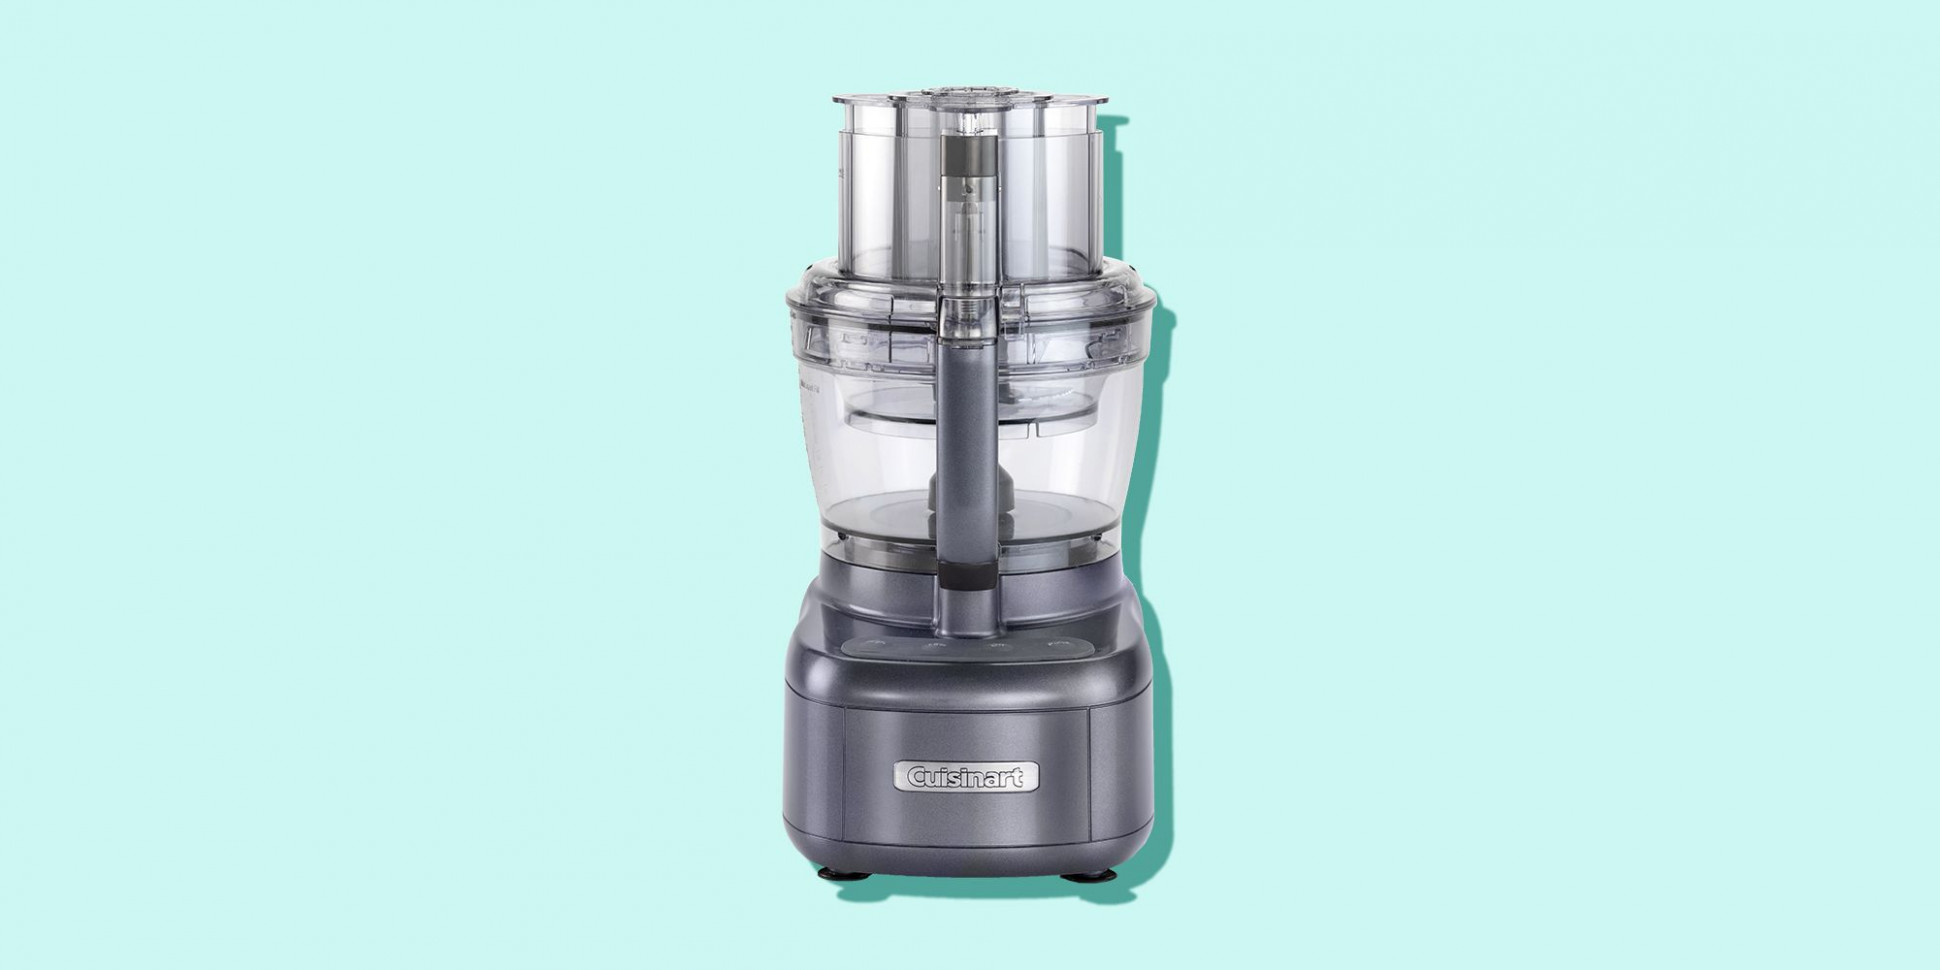 The top 11 best food processors - best food processor in 11 - recipes that use a food processor